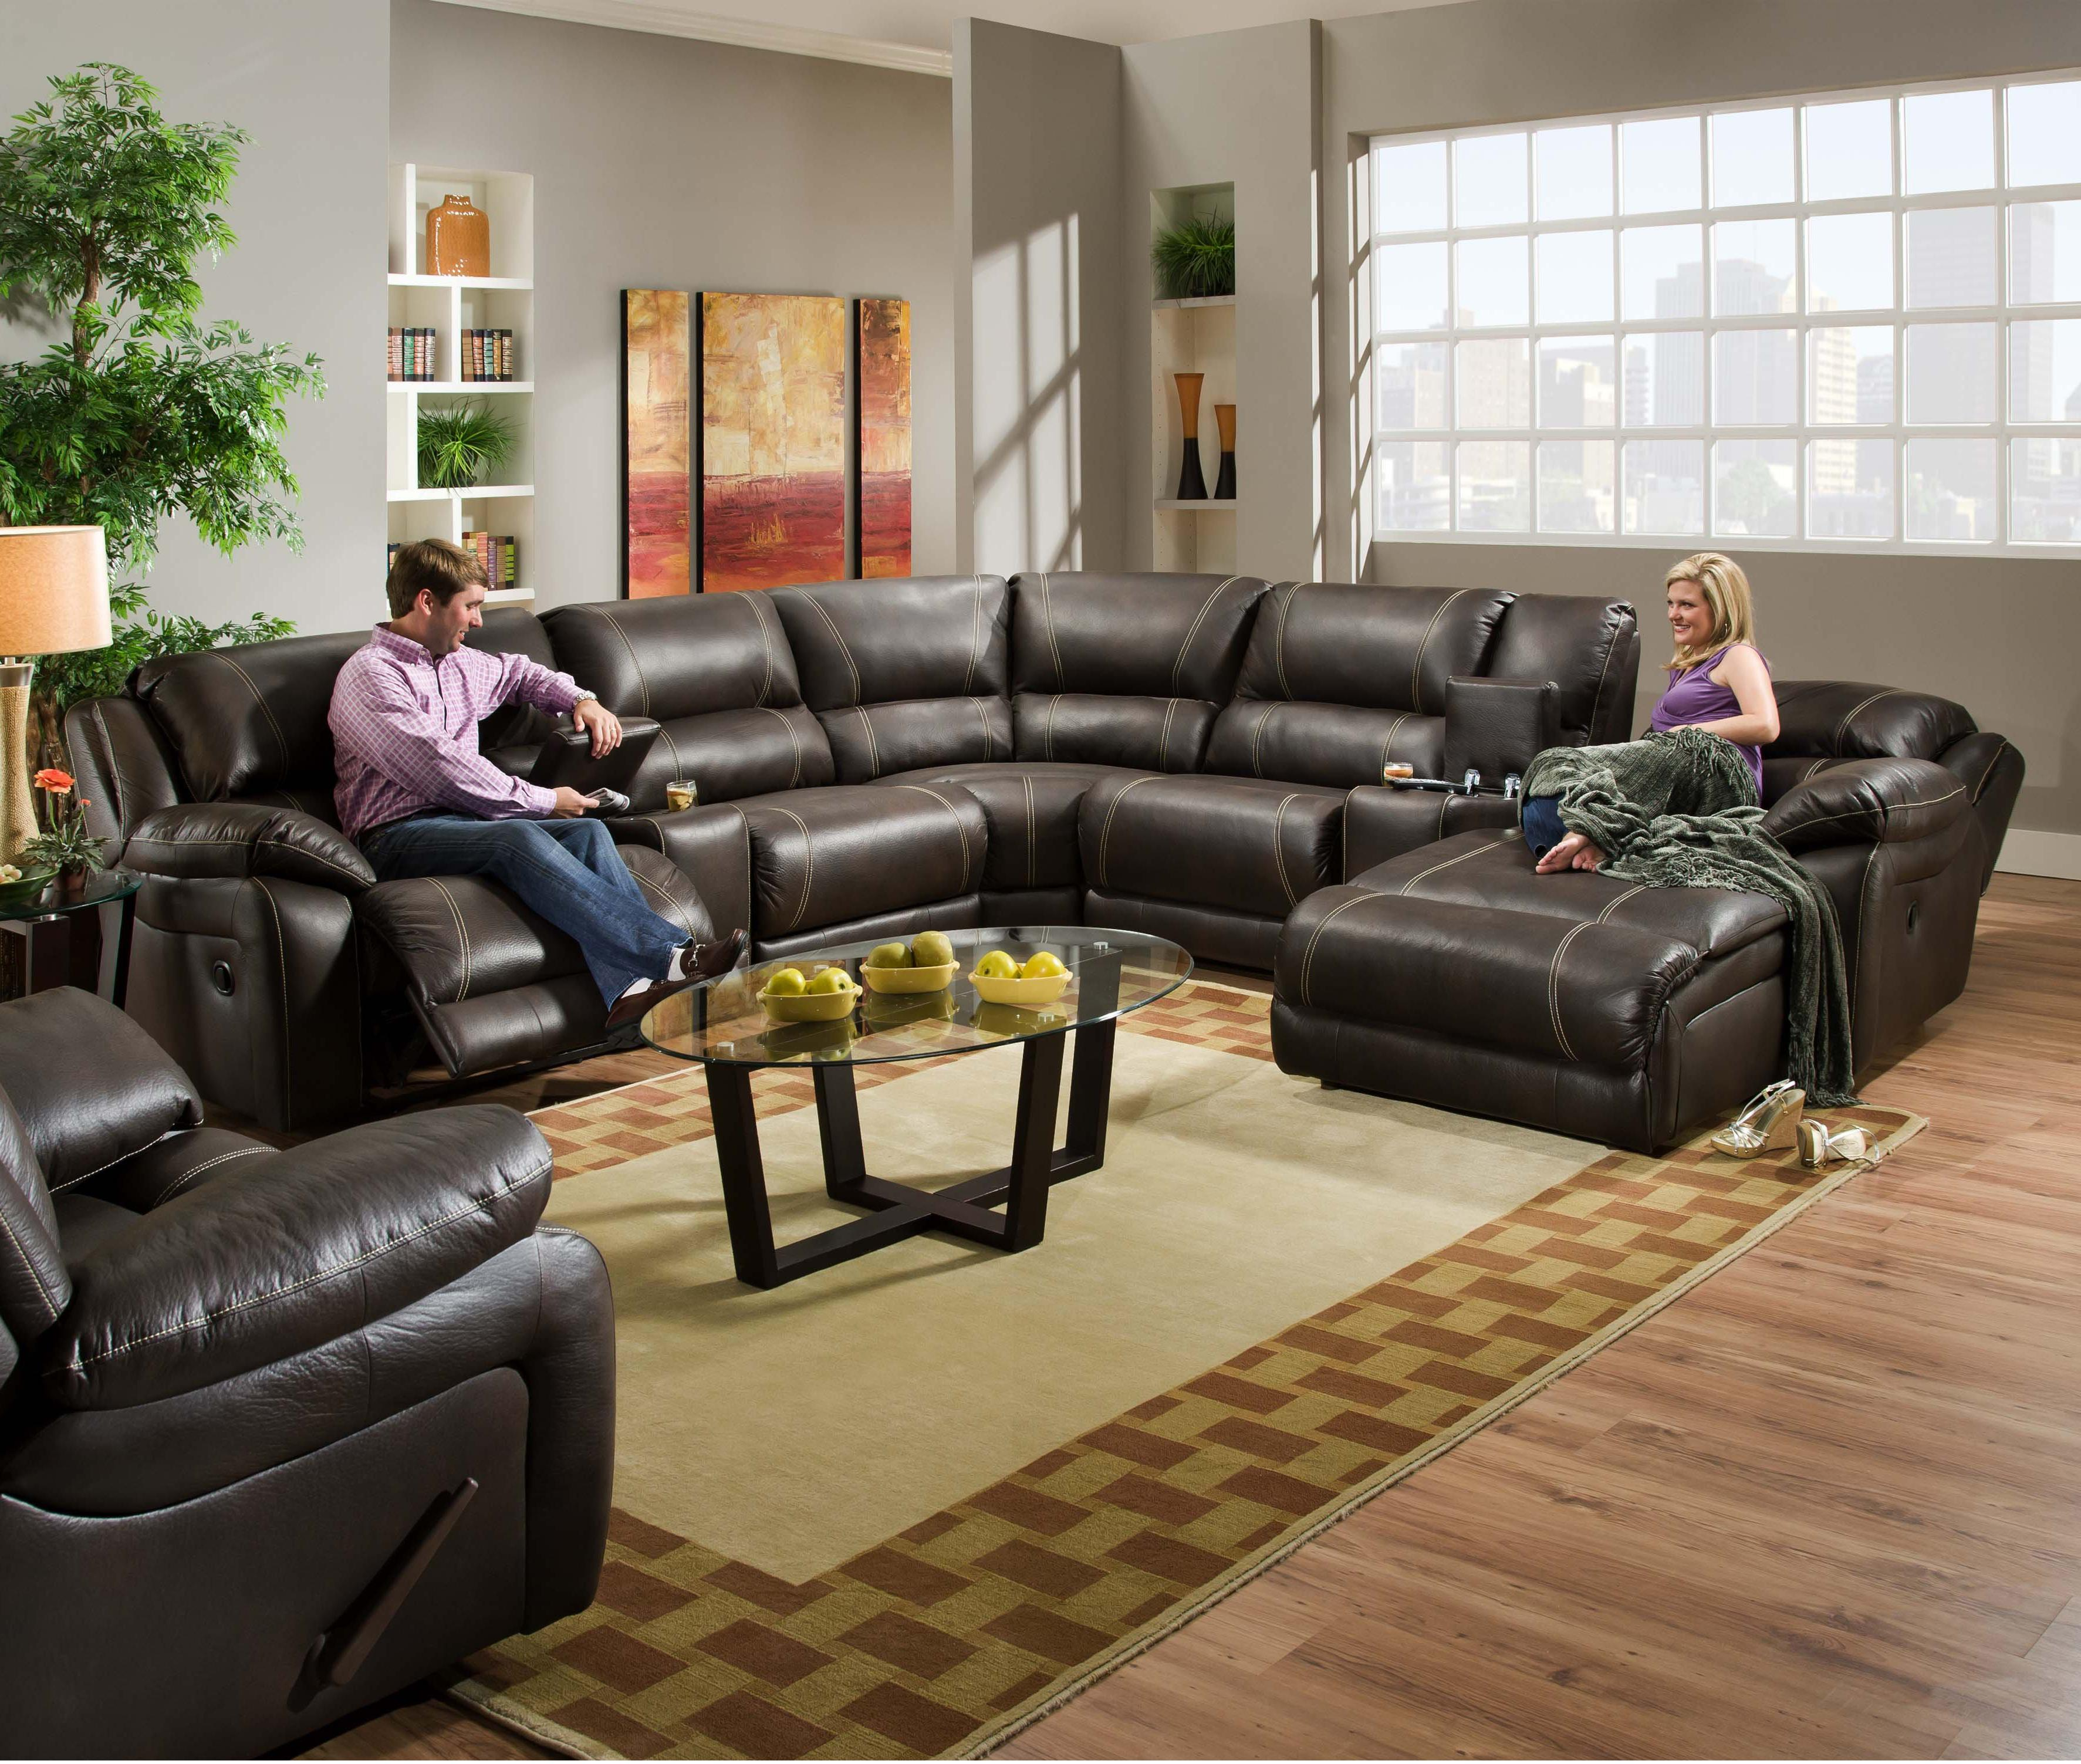 660 Casual Reclining Sectional Sofa by United Furniture Industries at Dream Home Interiors